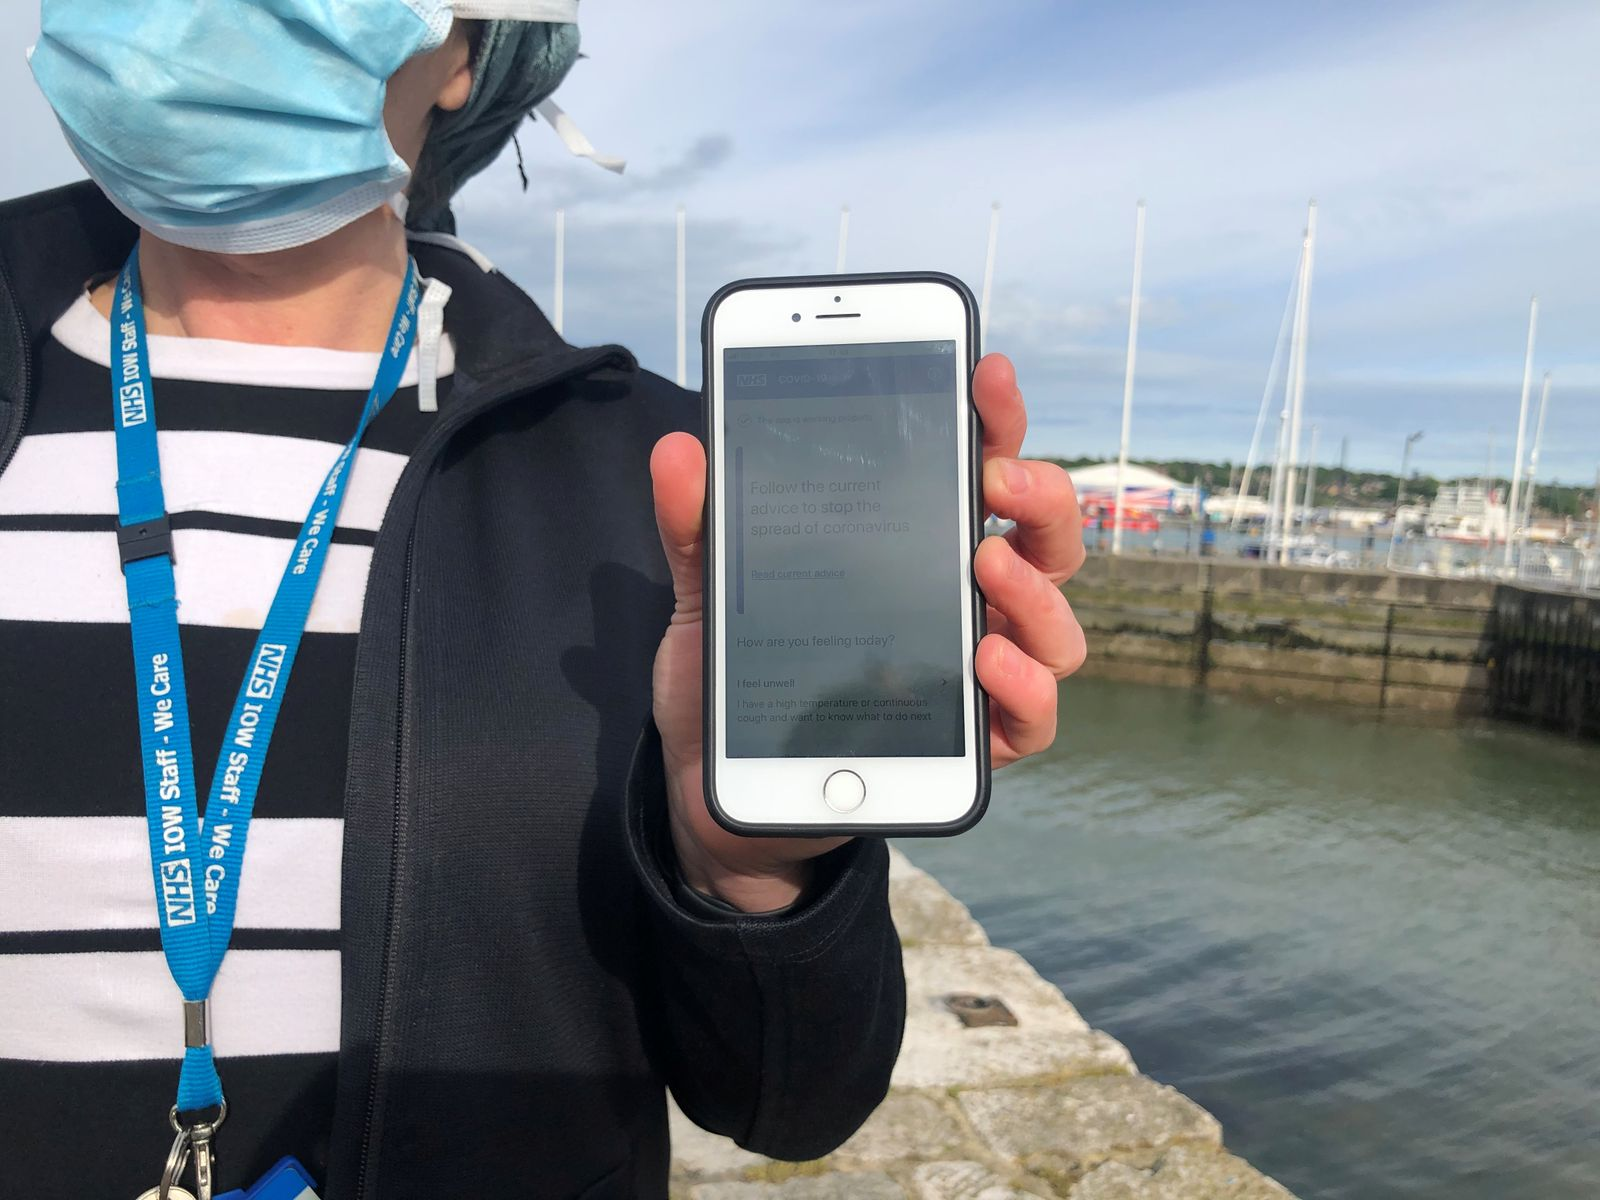 UK National Health Service employee Anni Adams shows a smartphone displaying the new NHS app to trace contacts with people potentially infected with the coronavirus disease (COVID-19) being trialled on Isle of Wight